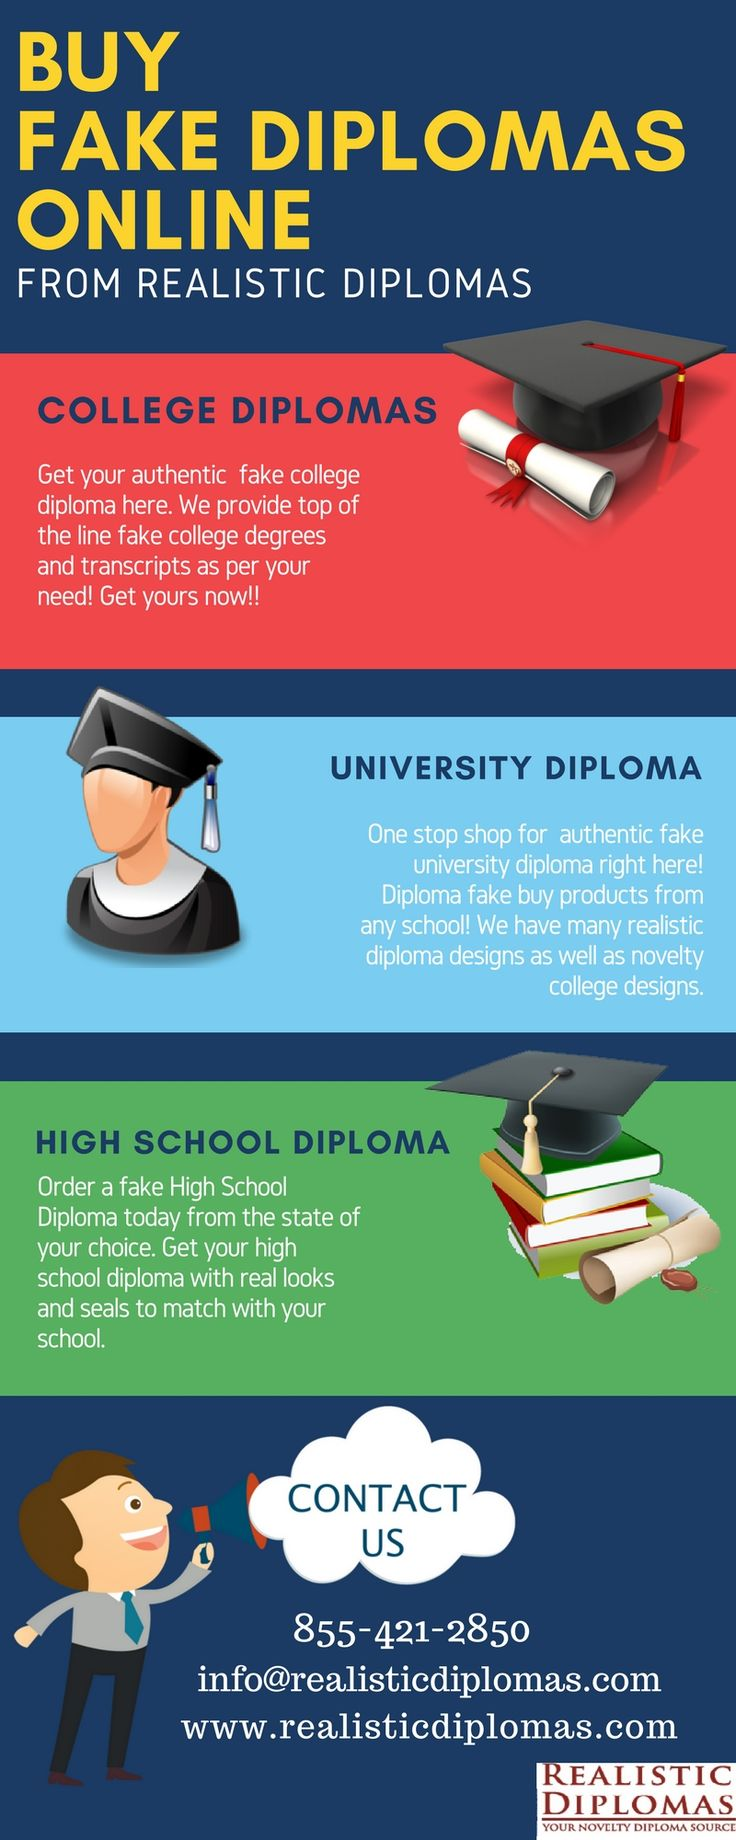 Do you want to buy a fake diploma from a School, College or University?  http://www.realisticdiplomas.com/category.aspx?categoryID=64Realistic Diplomas offer varieties of fake school, college and university diploma according to your need. Check out our website and get your diploma now!